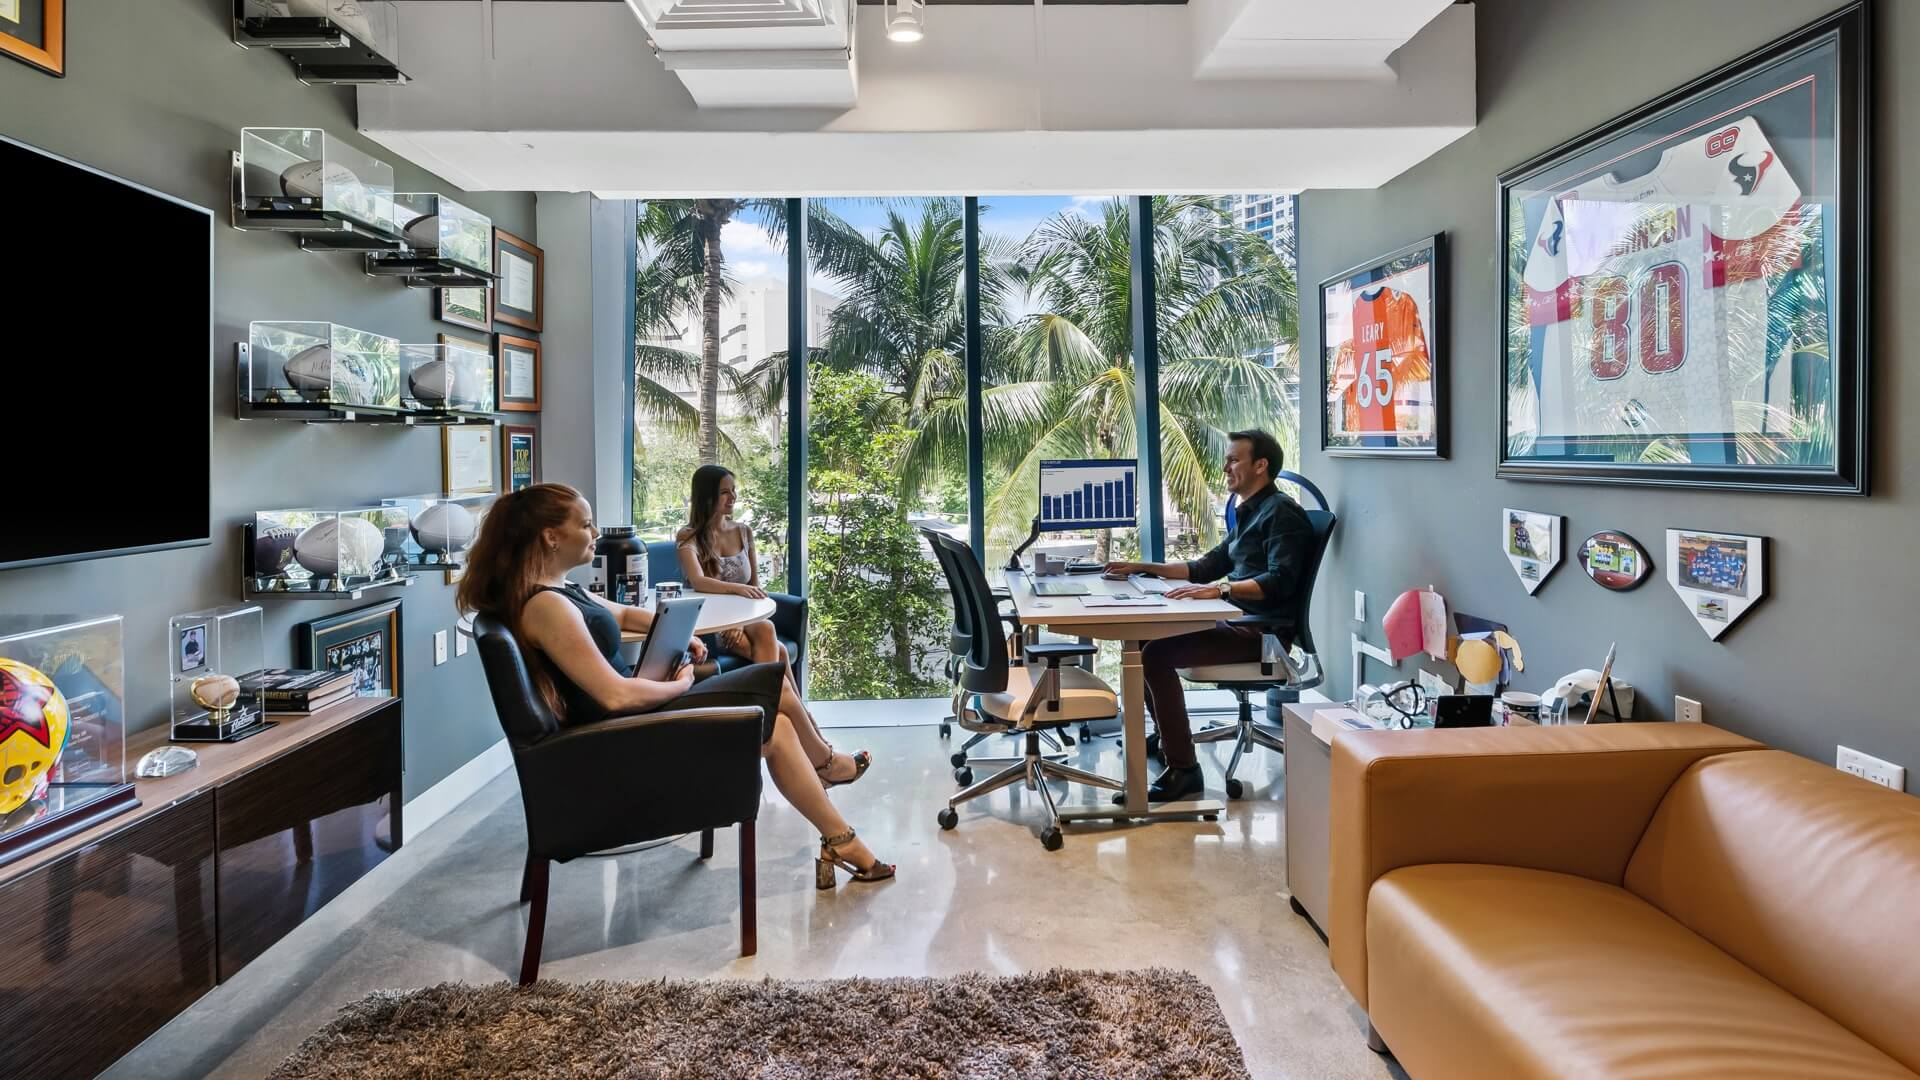 Coworking, shared office space in Fort Lauderdale